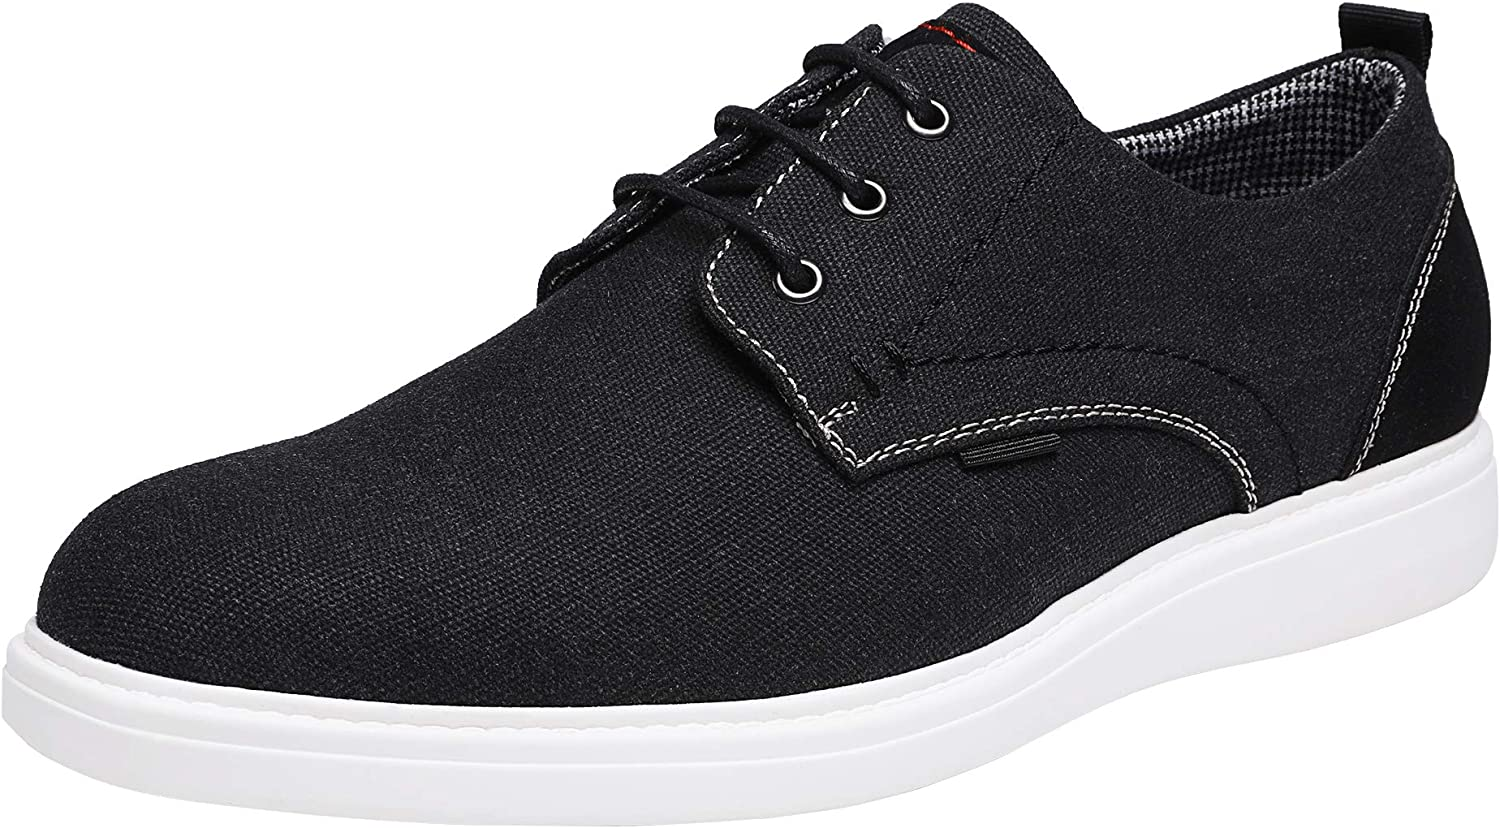 Bruno Max 89% OFF Marc Men's Lace-up Fashion Sneakers Brand new Canvas Casual Shoes